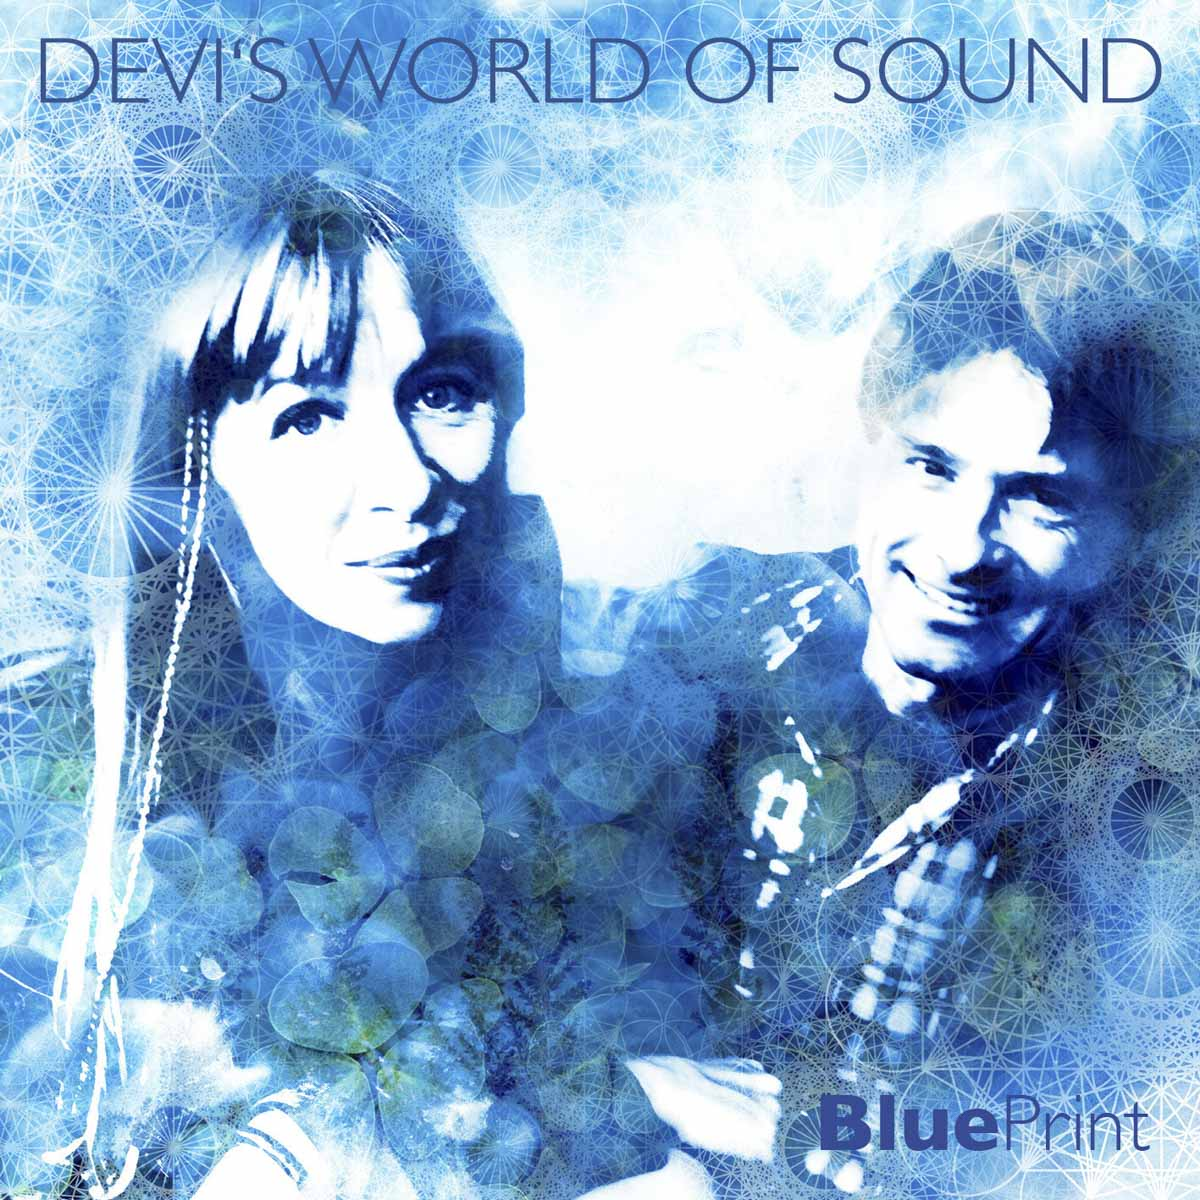 Devi's World of Sound - Blue Print